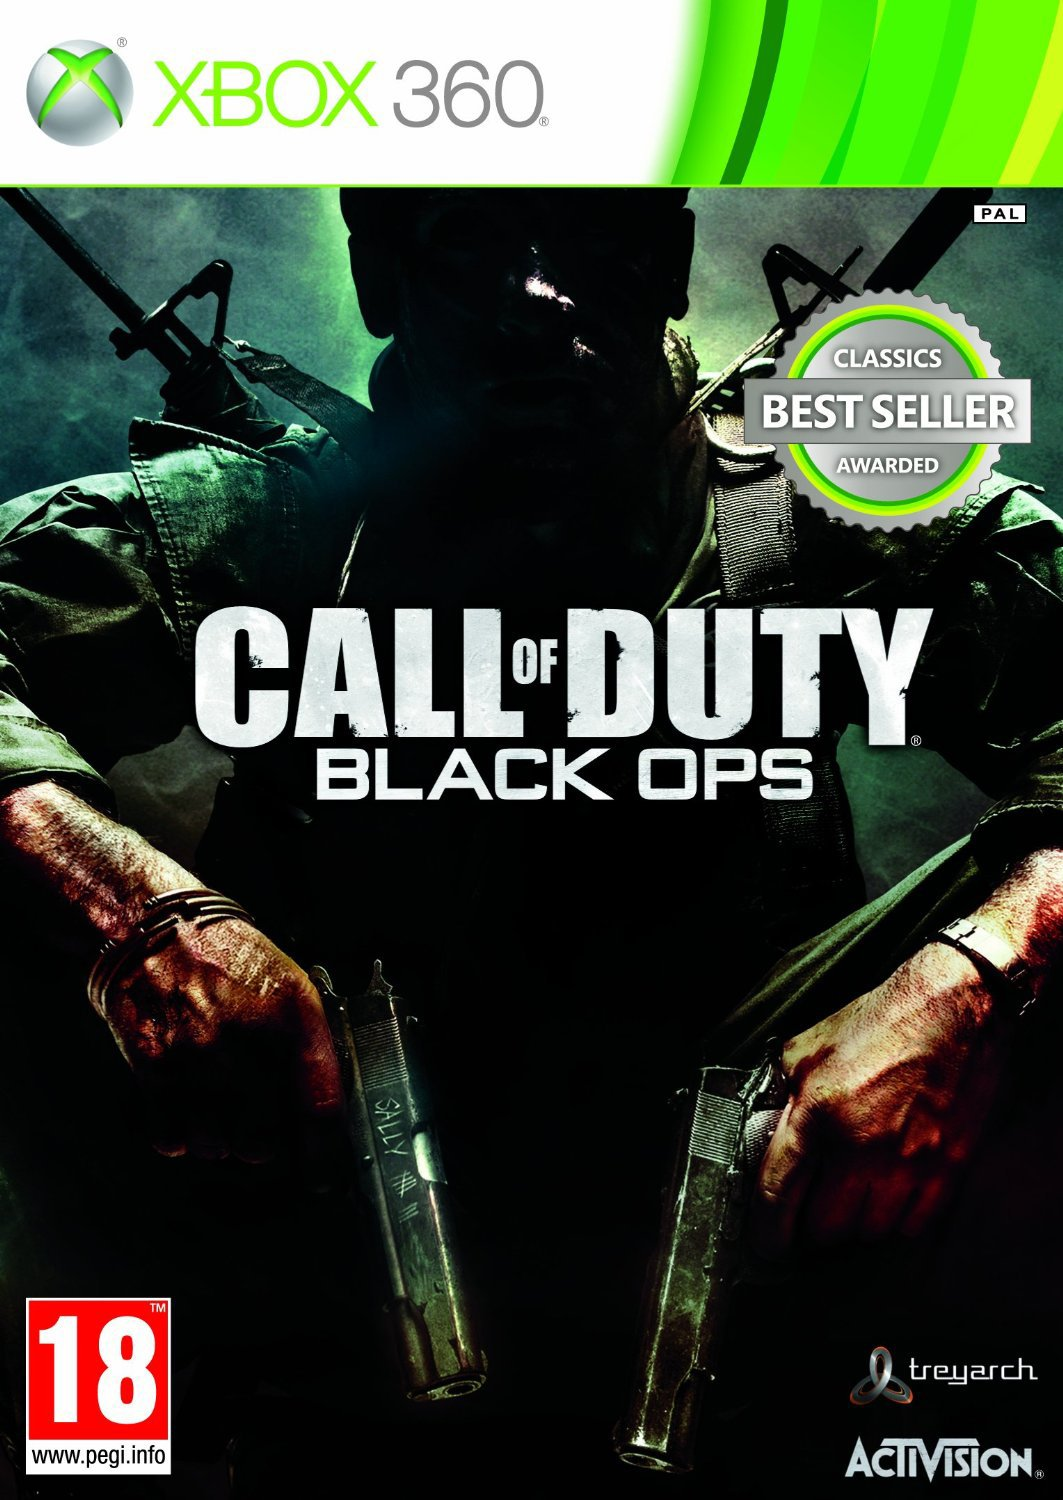 Call Of Duty - Black Ops - Xbox - 360 Game.